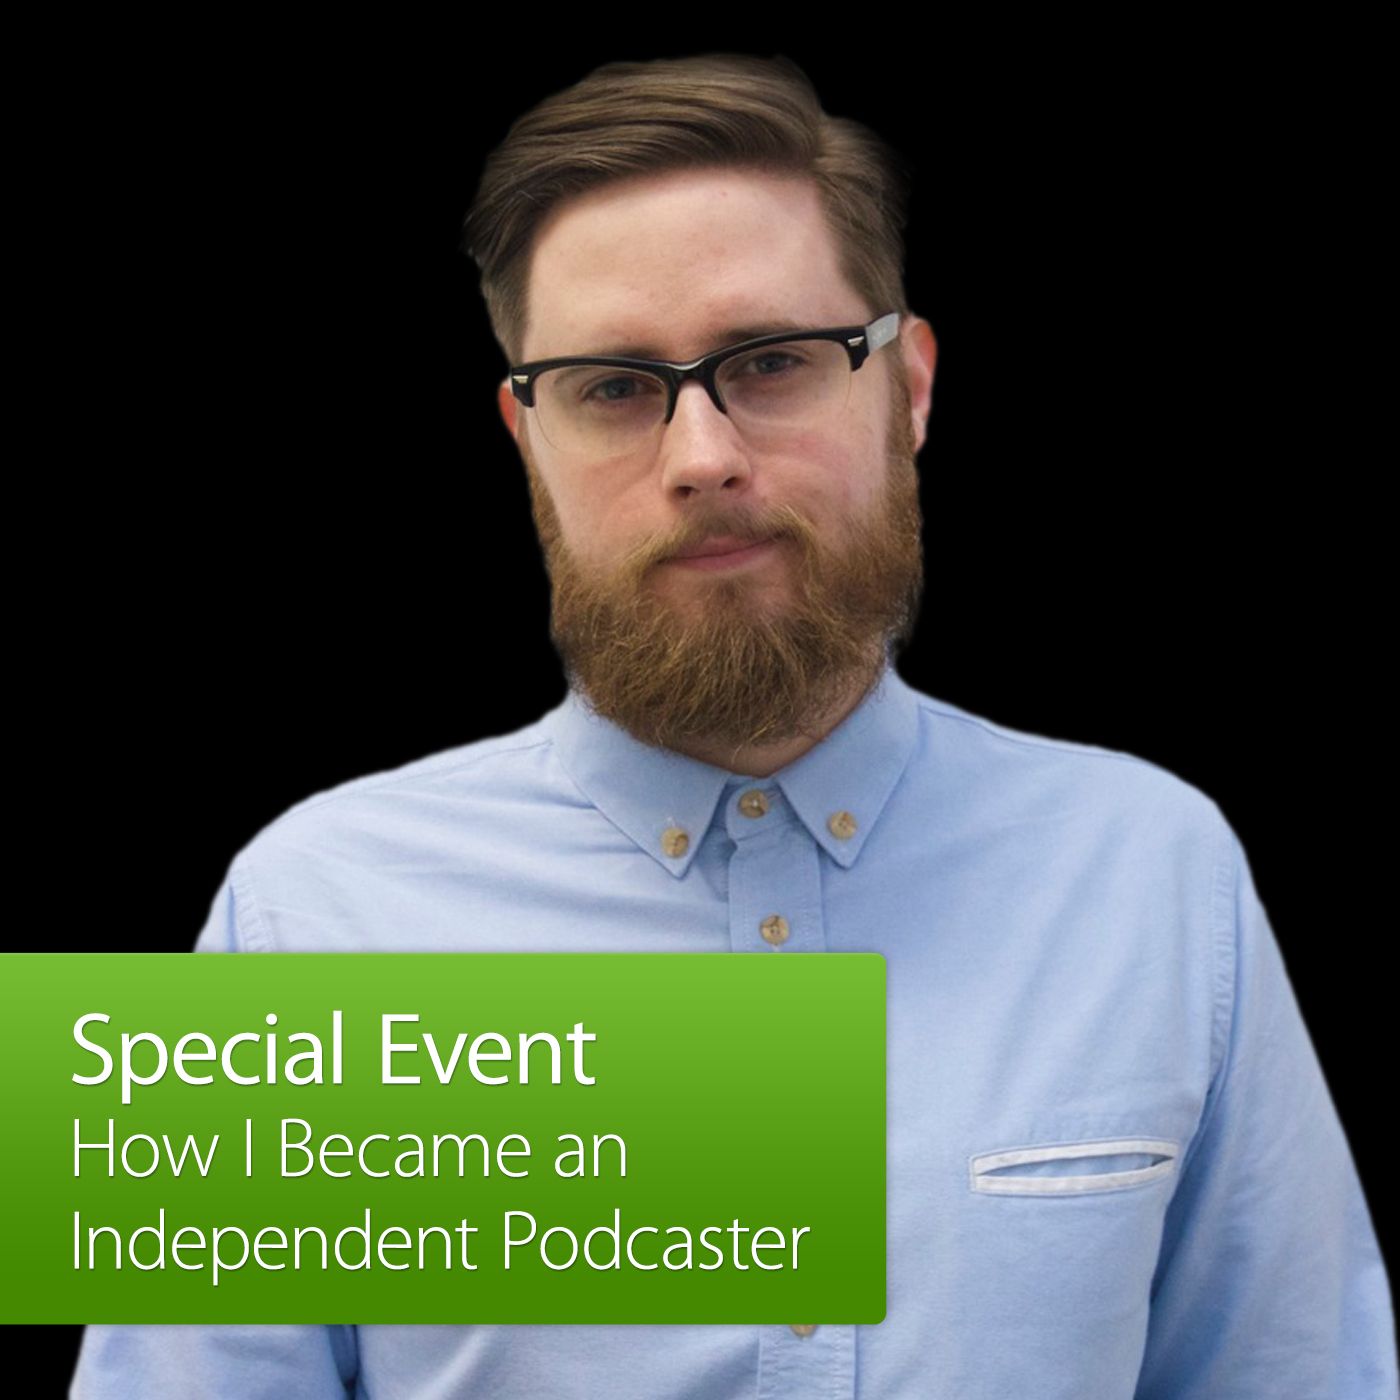 How I Became an Independent Podcaster